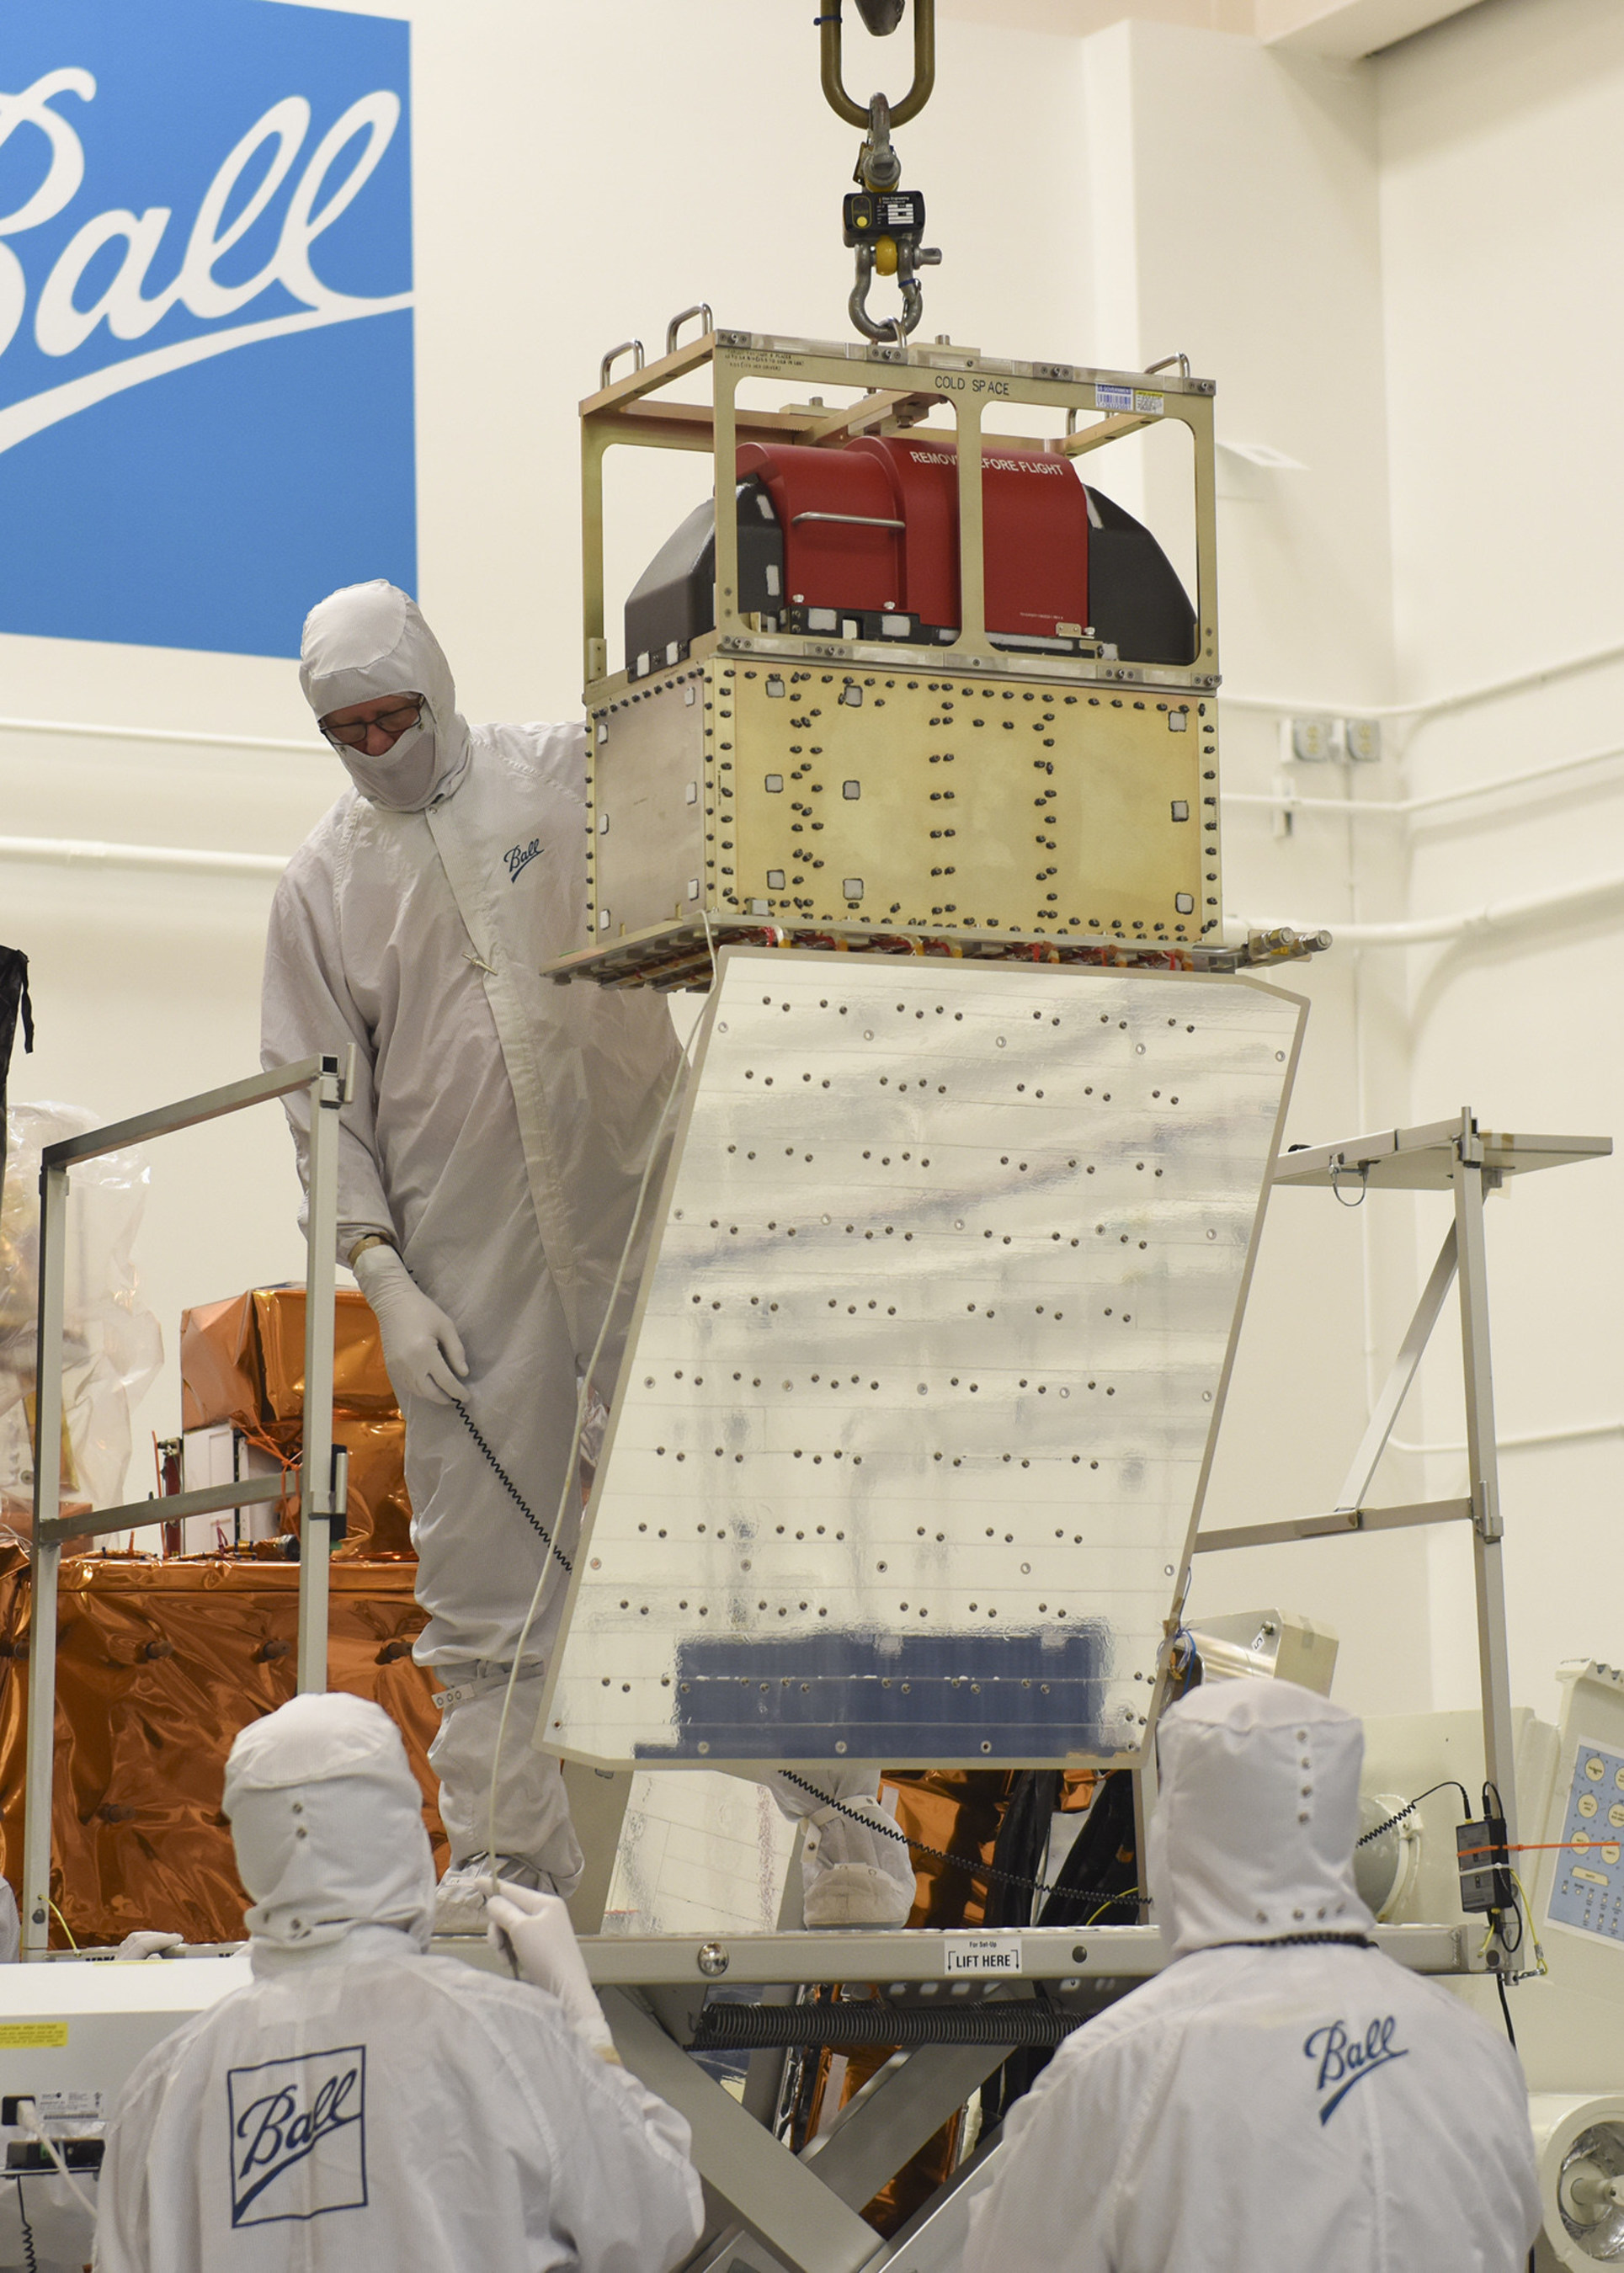 Ball Aerospace has integrated the final of five instruments to fly aboard the Joint Polar Satellite System-1 satellite. The Advanced Technology Microwave Sounder was the final instrument to be integrated onto the JPSS-1 satellite, scheduled to launch in early 2017.